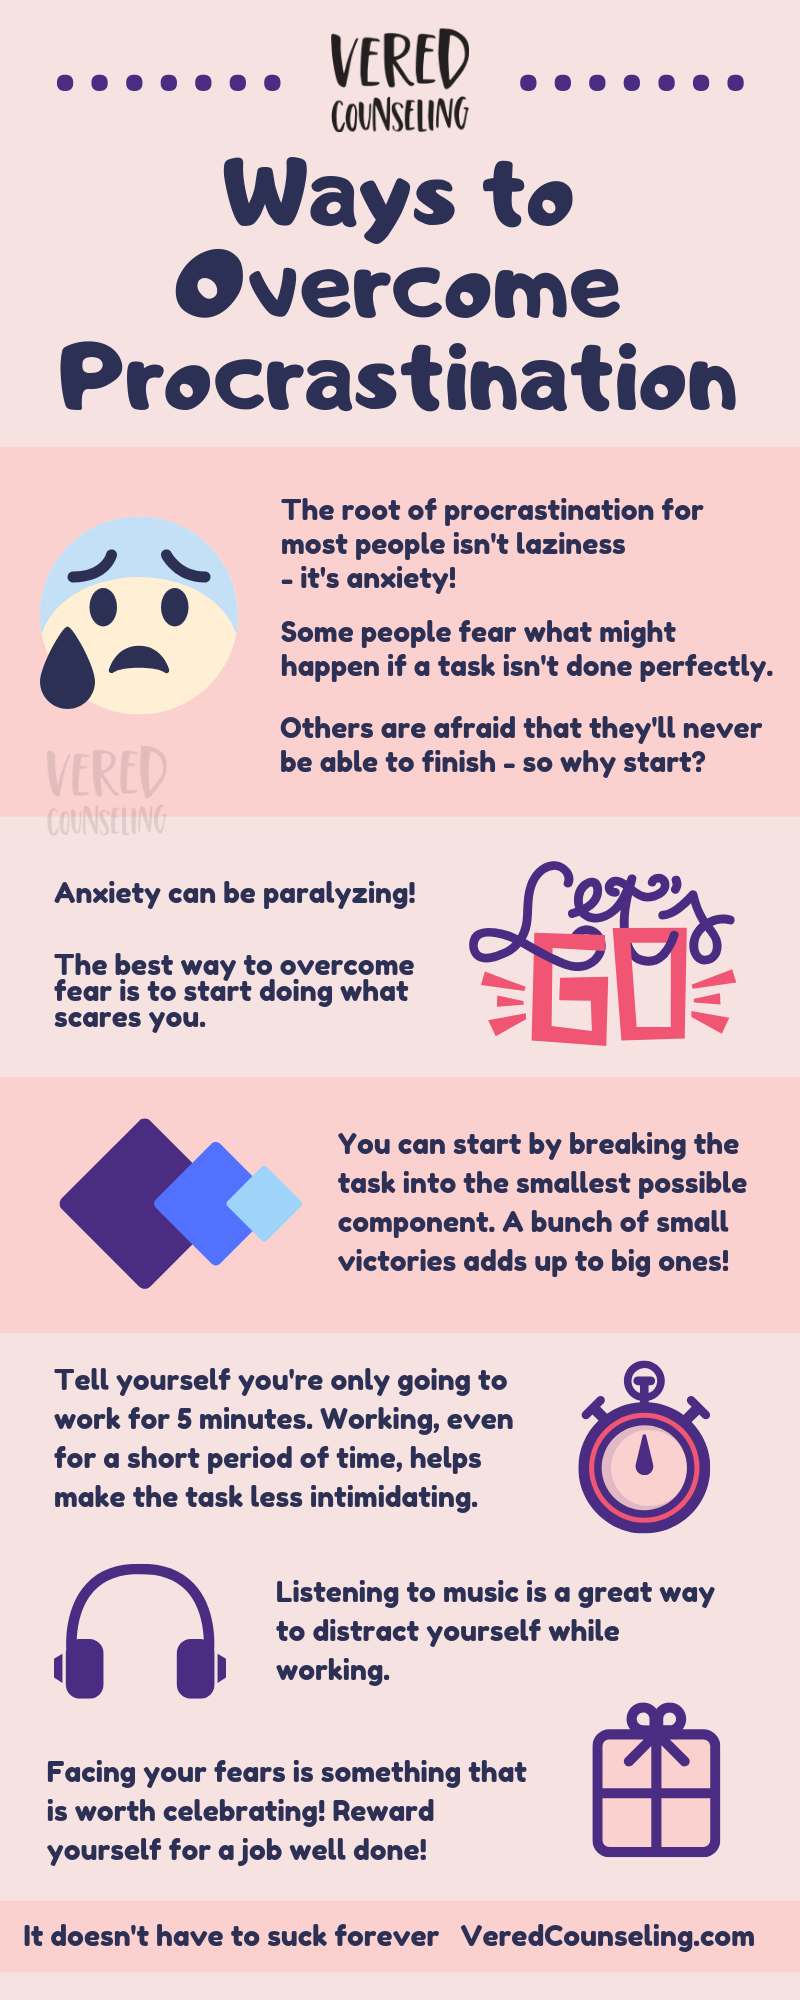 How can I help my teenager finish homework, study for exams, or deal with perfectionism? Procrastination is often a symptom of anxiety. We help teens become who they want to be.